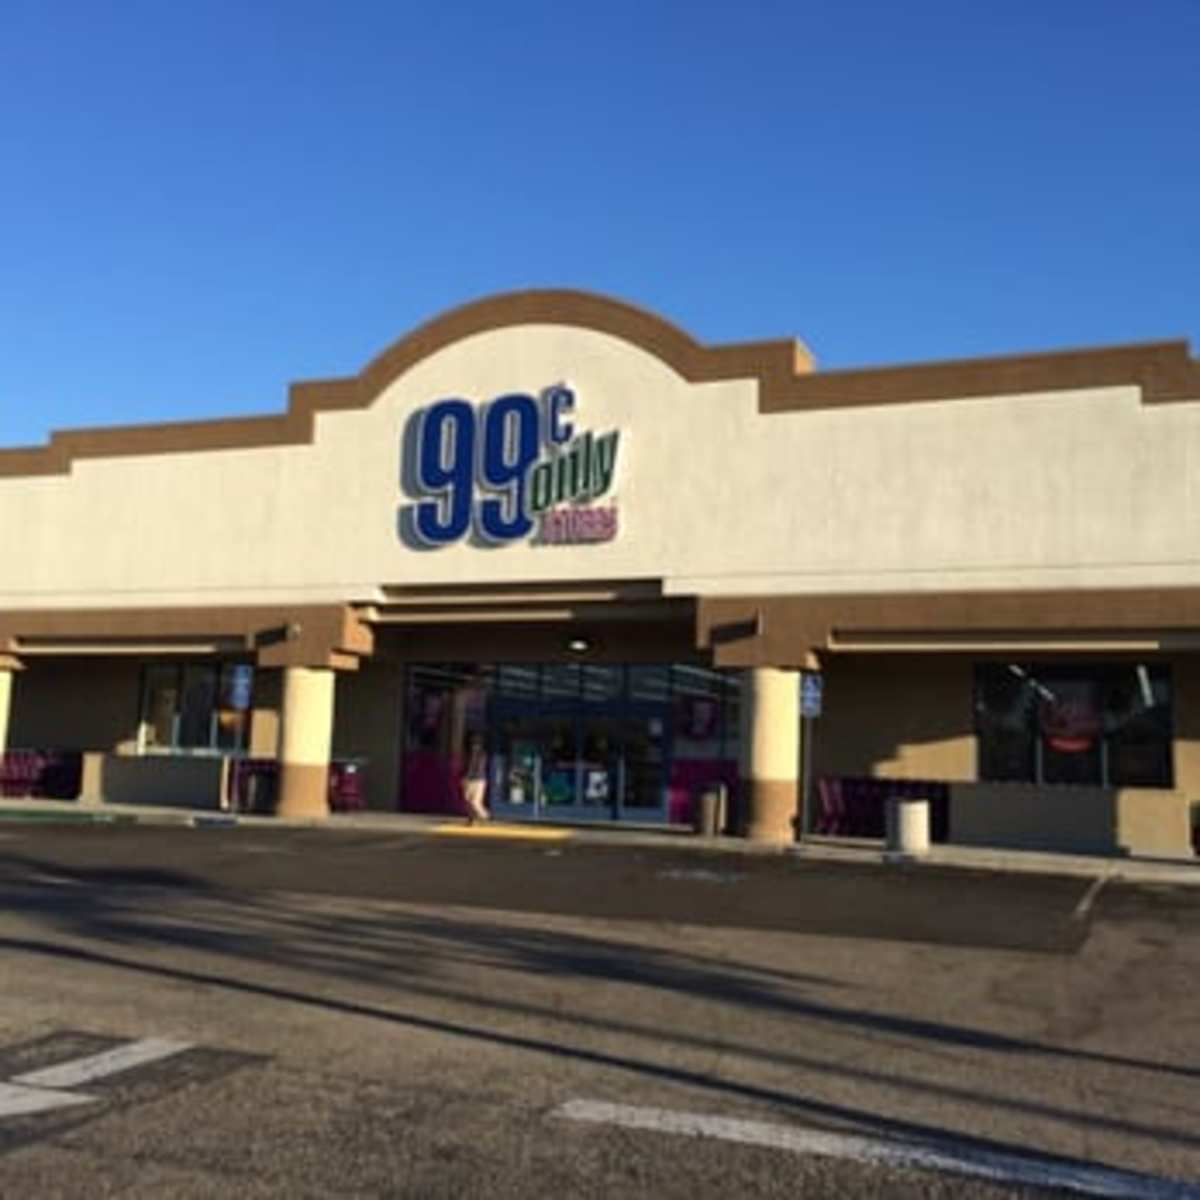 11 Items You Should Purchase At The 99 Cent Store